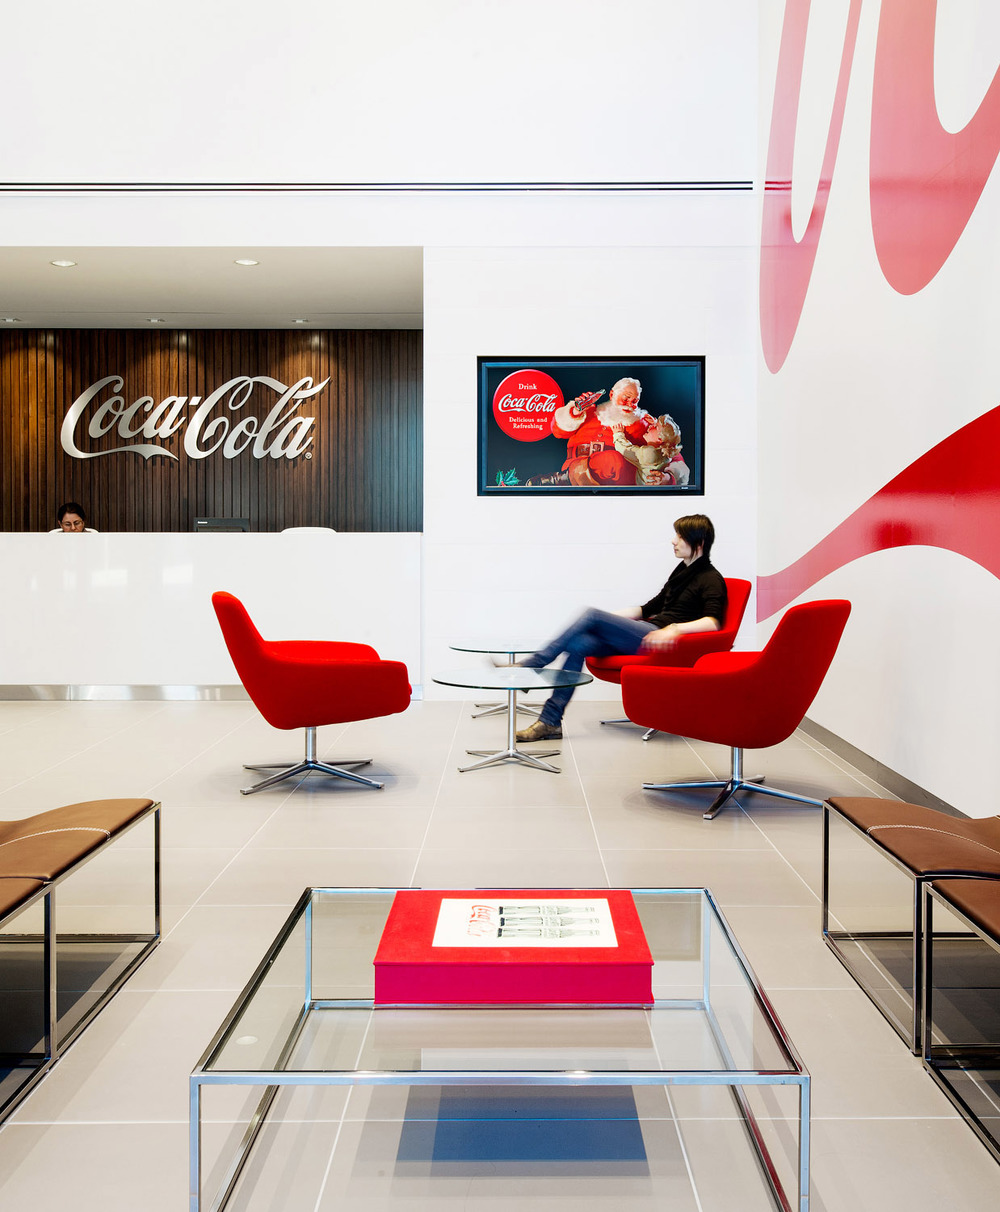 Coca-Cola Canadian Headquarters